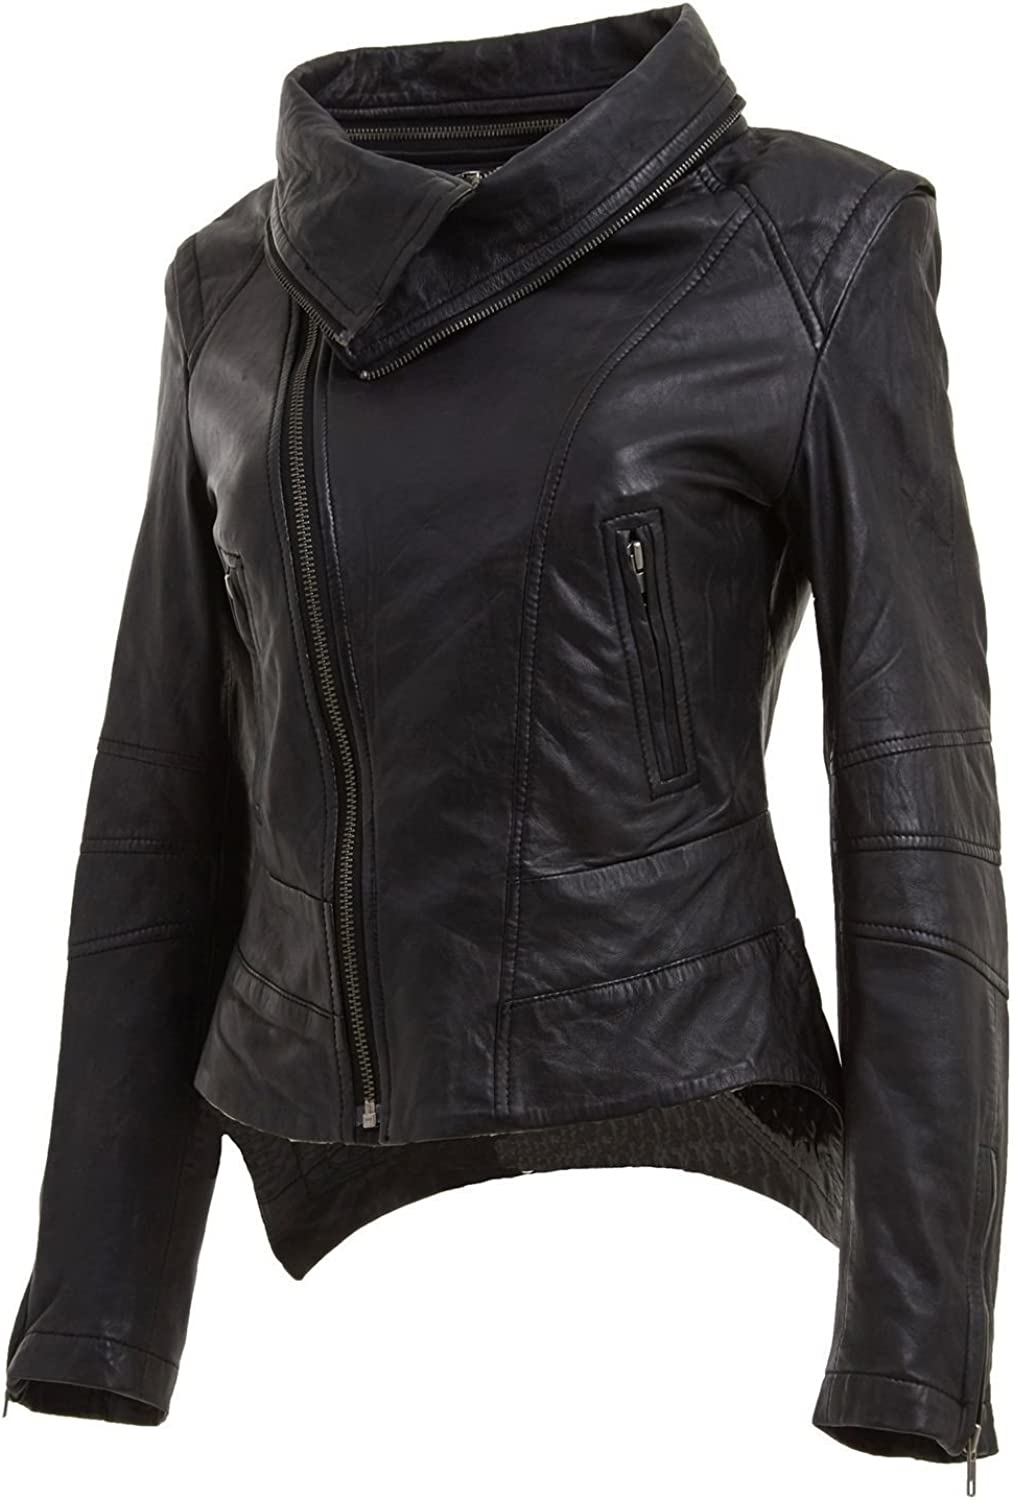 Our shop OFFers the best service Leather Hubb Black Women's Snapdragon Motorcycle Moto Translated Leat Biker